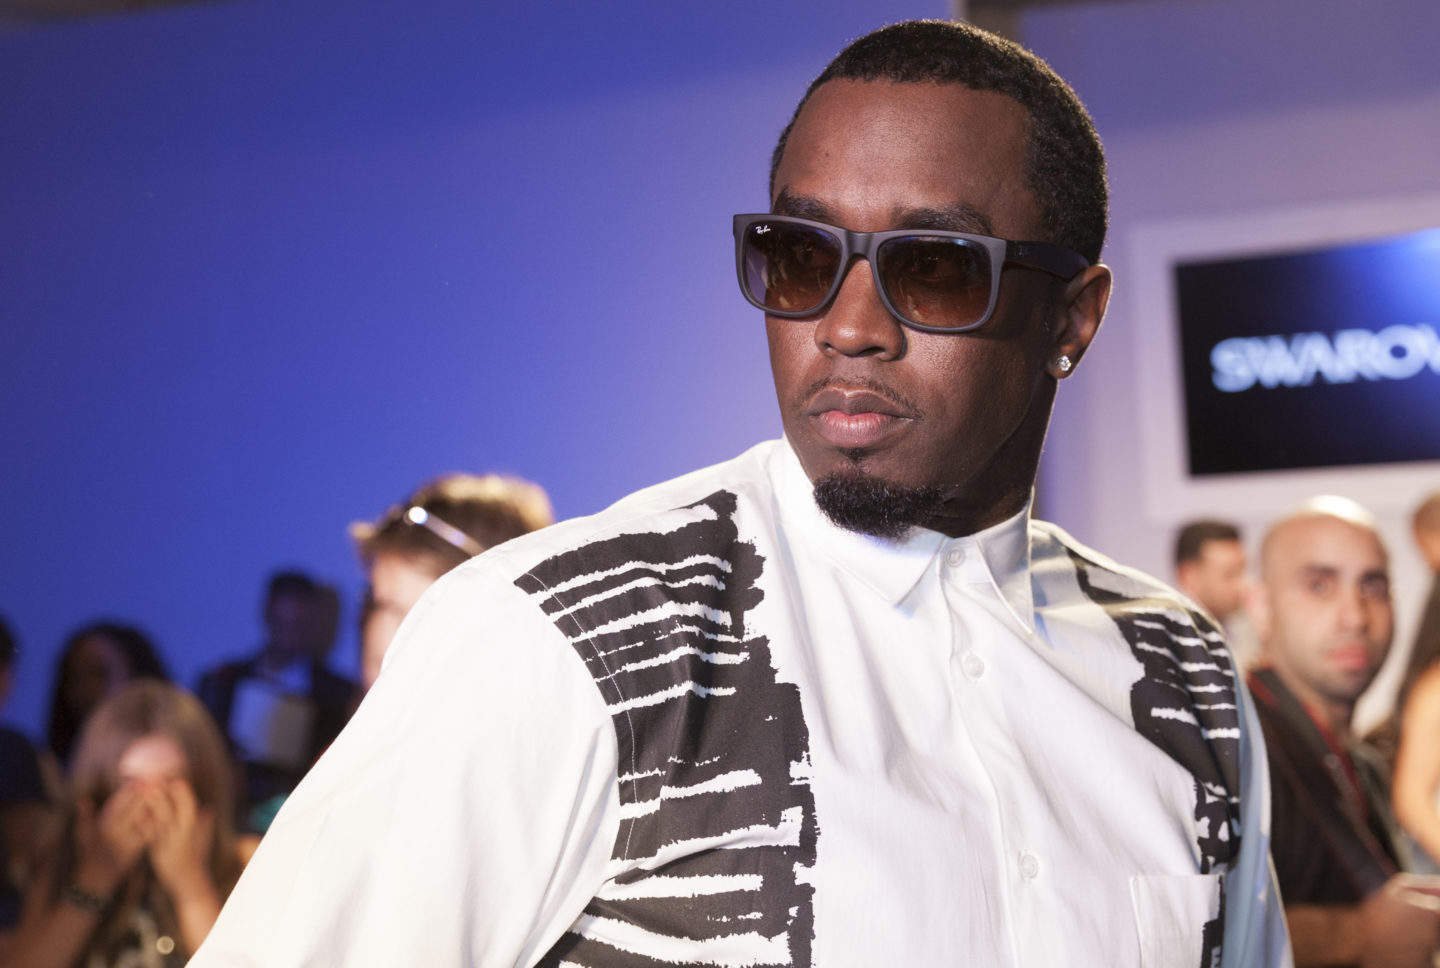 Diddy Has Fans Emotional After Posting This Video